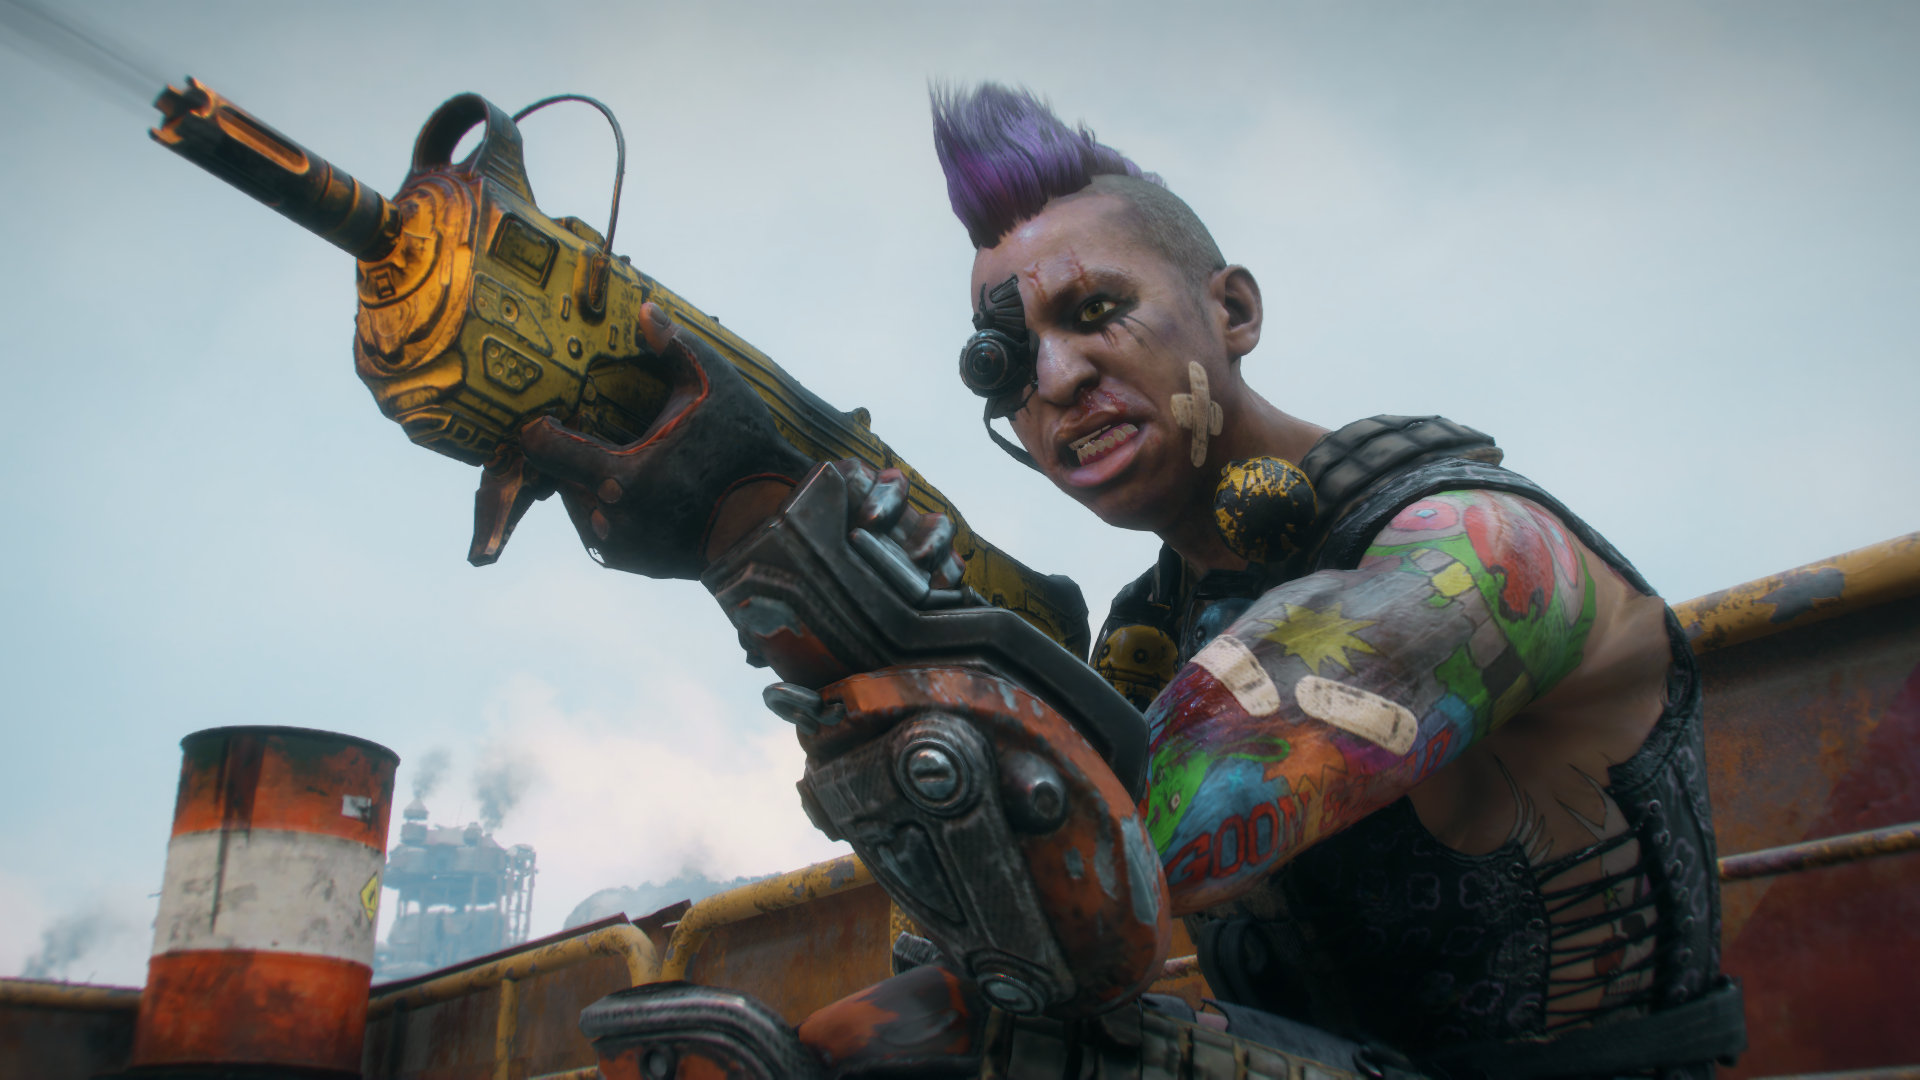 A screenshot of a goon from Rage 2, a dude with terrible sleeve tattoos and a scrubbing purple mohawk, wielding a big yellow gun